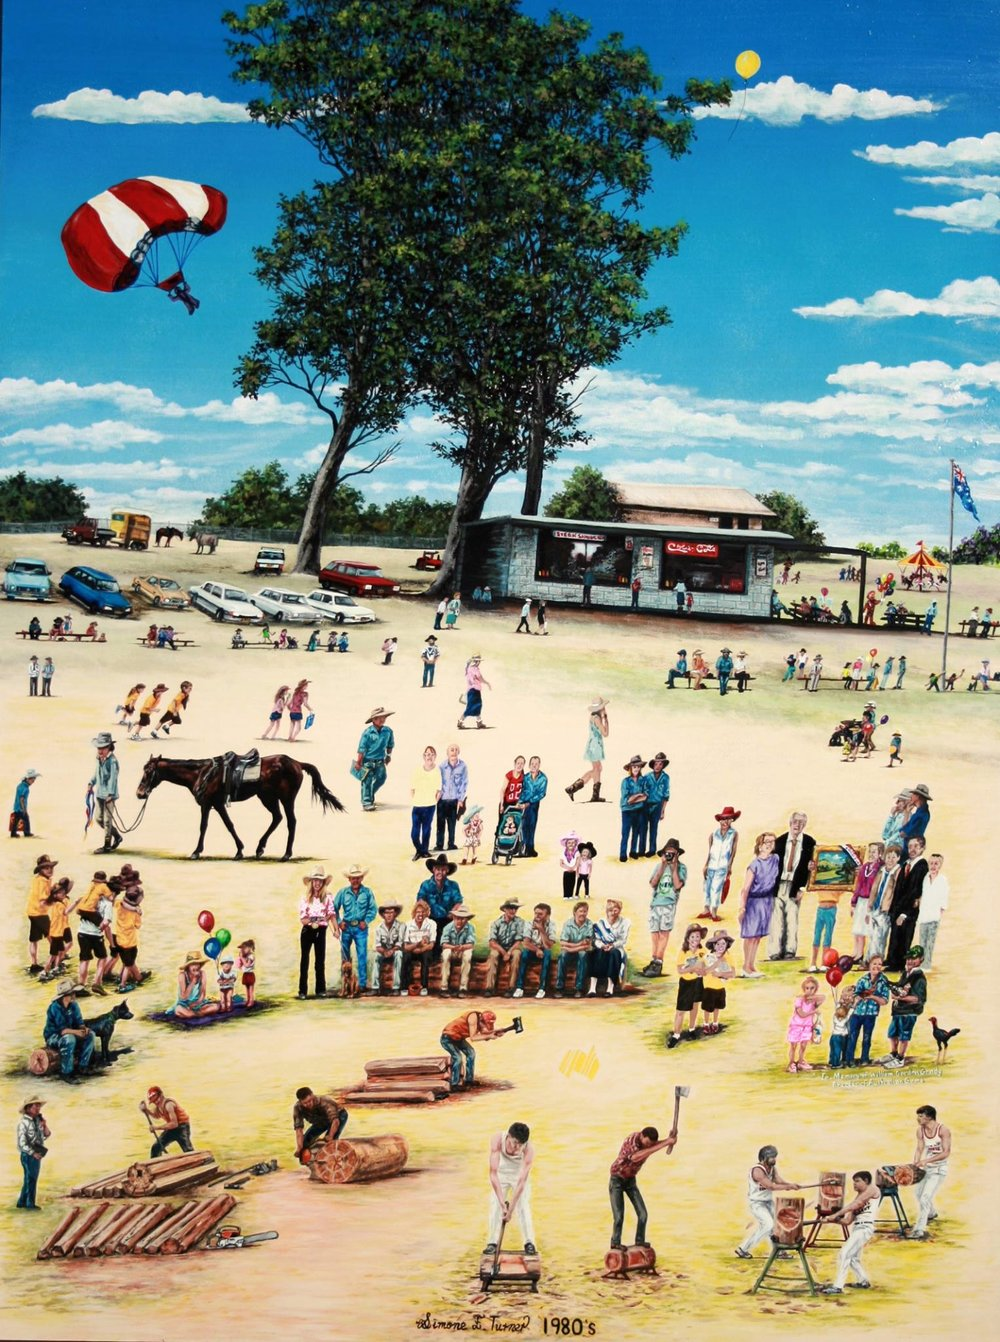 2015 Dungog Show through the decades Mural.jpg